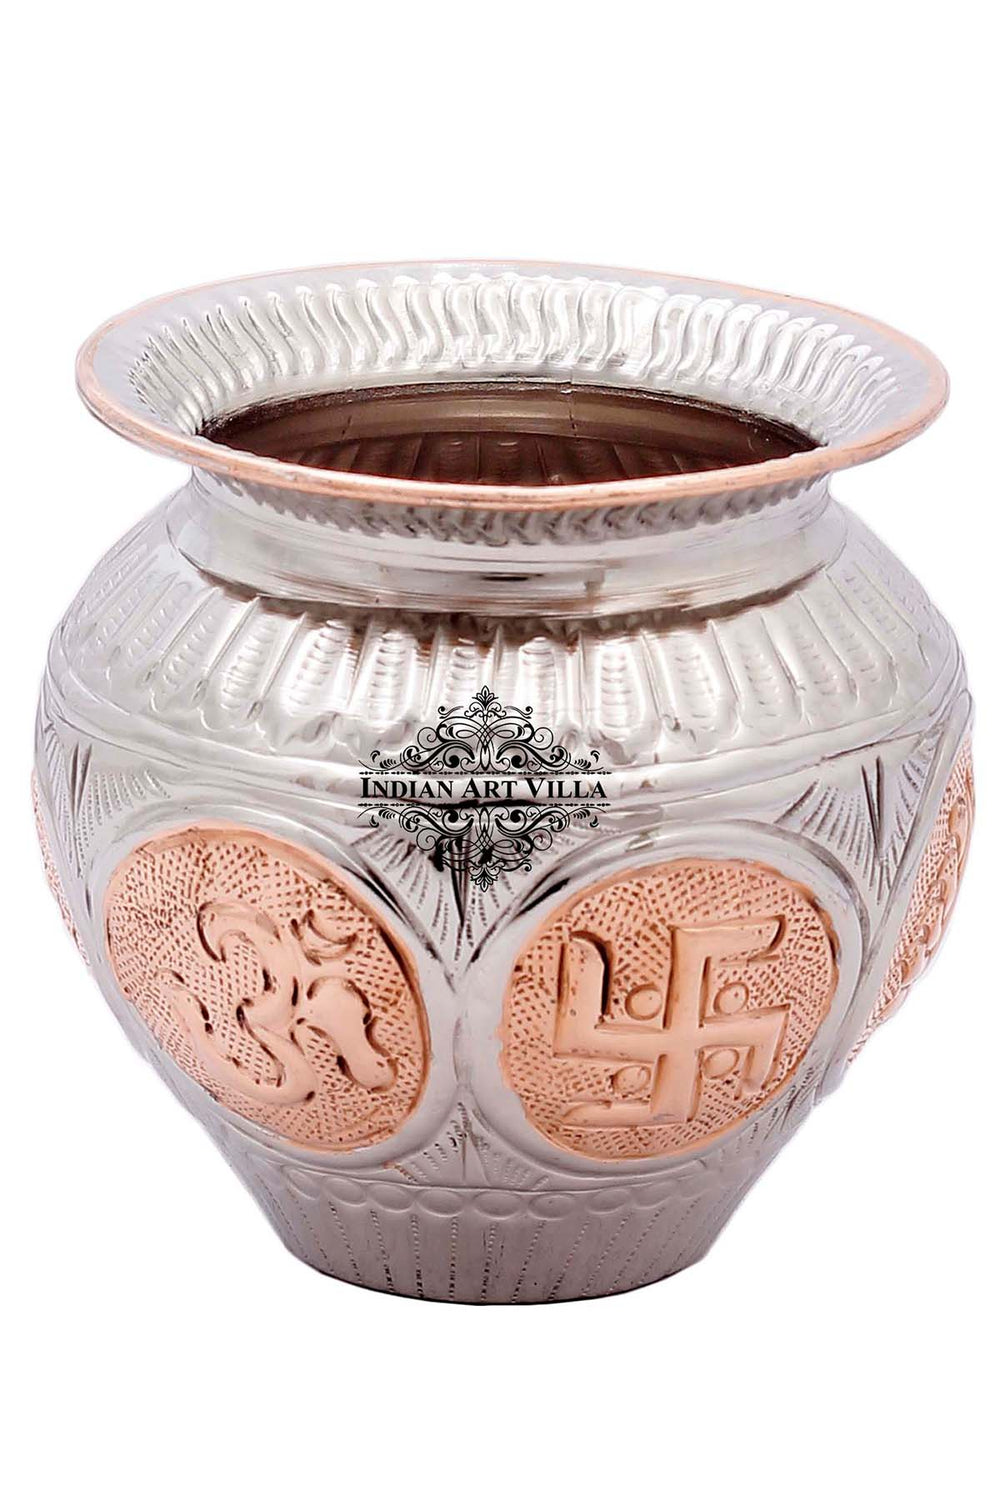 Copper Om Swastik Design Lota Kalash Pot, 23 Oz